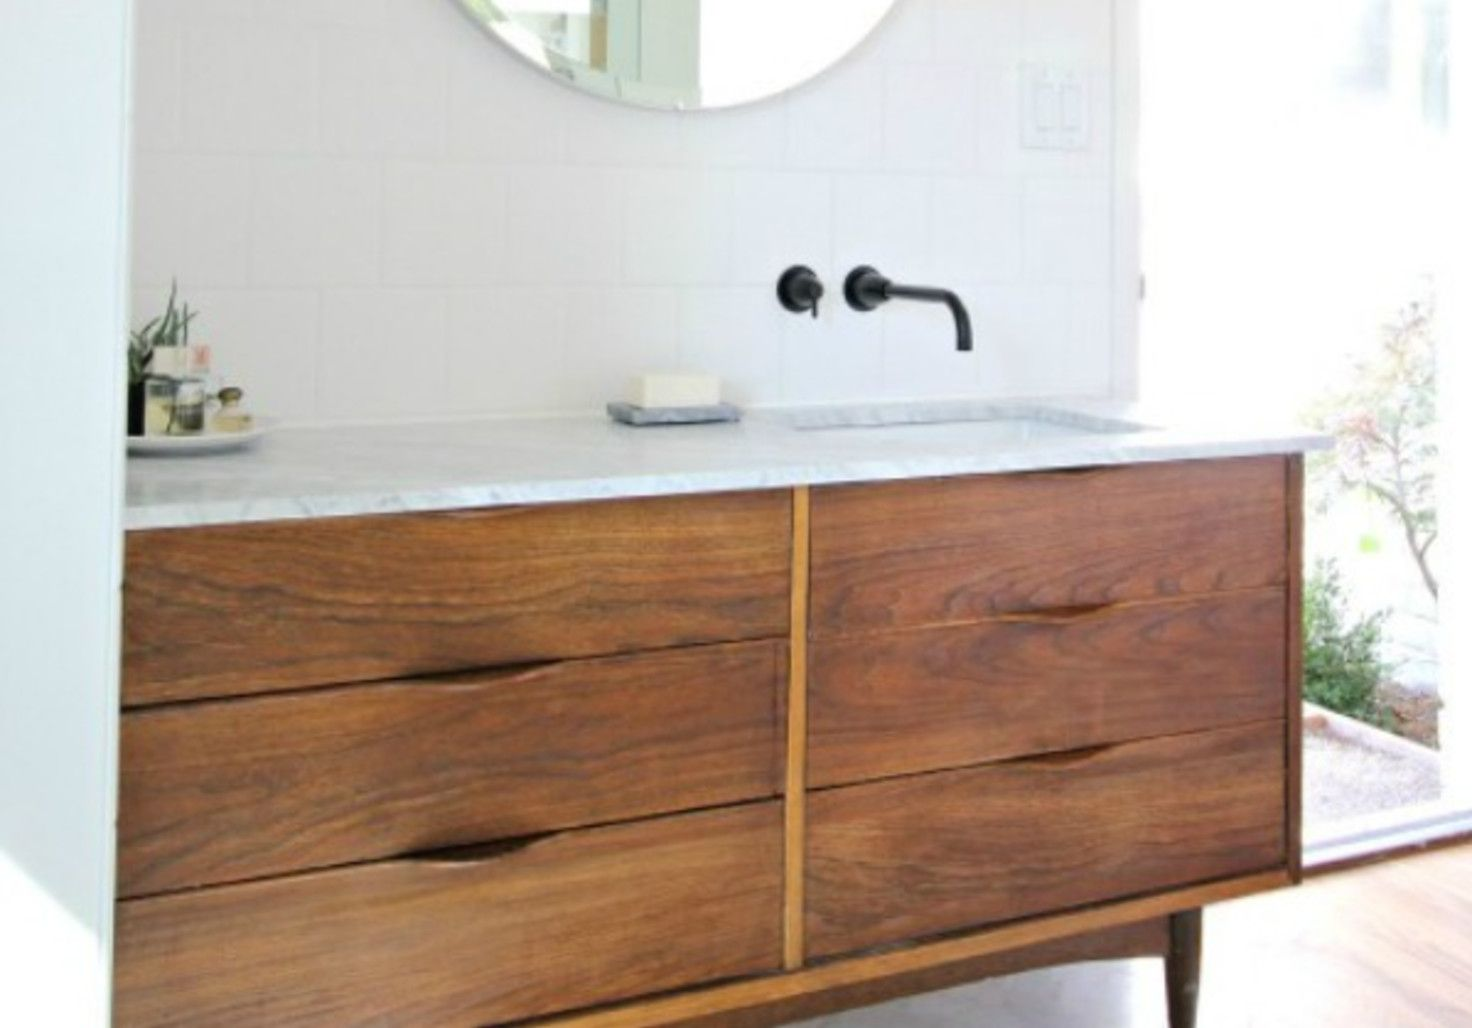 Pair a vintage dresser with a modern top